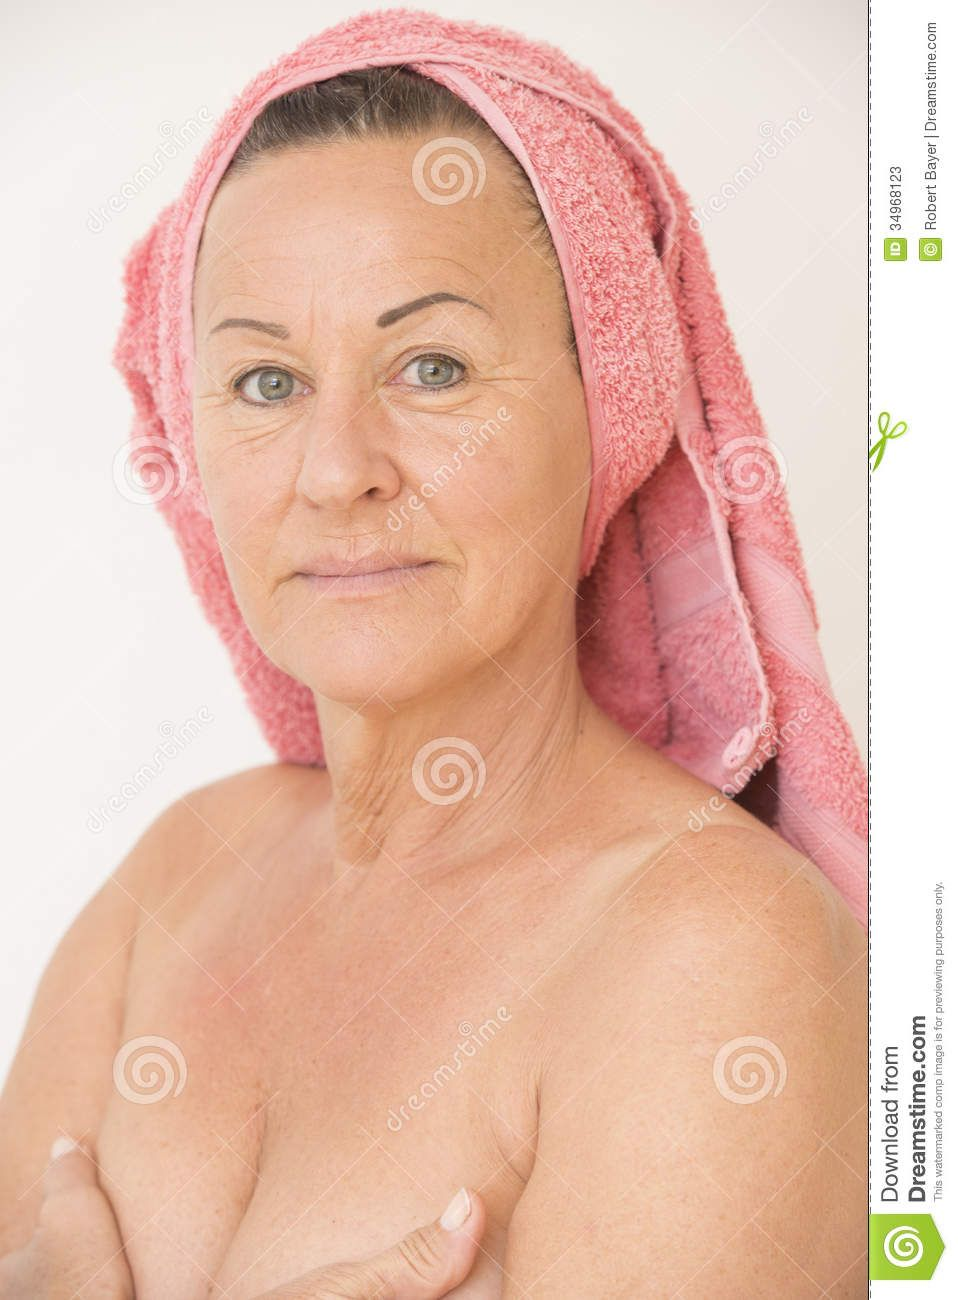 Be Happy With Your Breasts Portrait Happy Attractive Mature Woman Naked With Towel On Head And